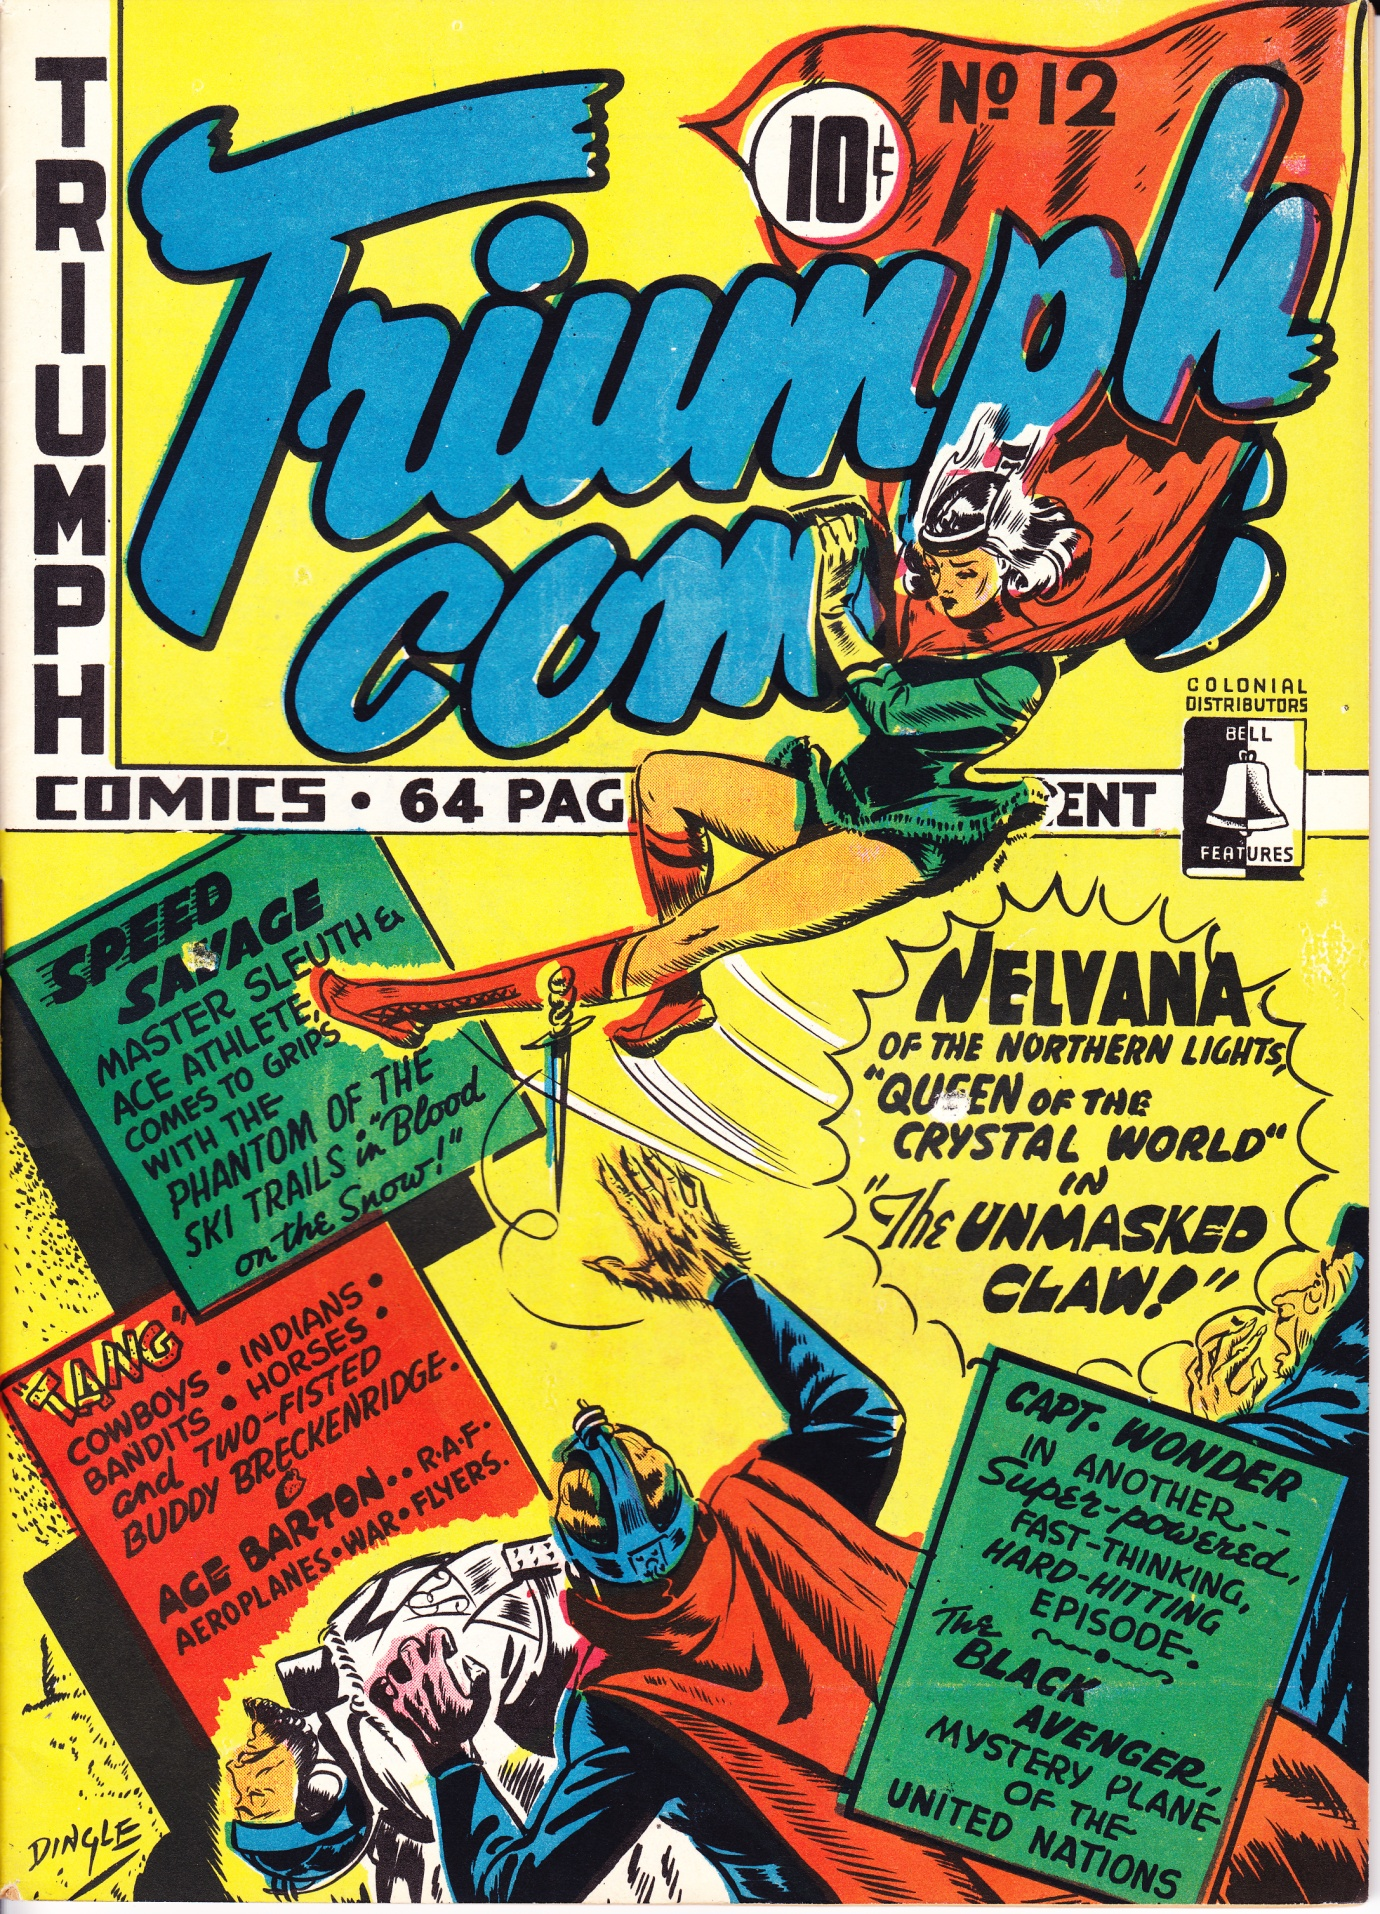 C:\Users\Robert\Documents\CARTOONING ILLUSTRATION ANIMATION\IMAGE CARTOON\IMAGE CARTOON N\NELVANA, 3,Triumph 12.jpg